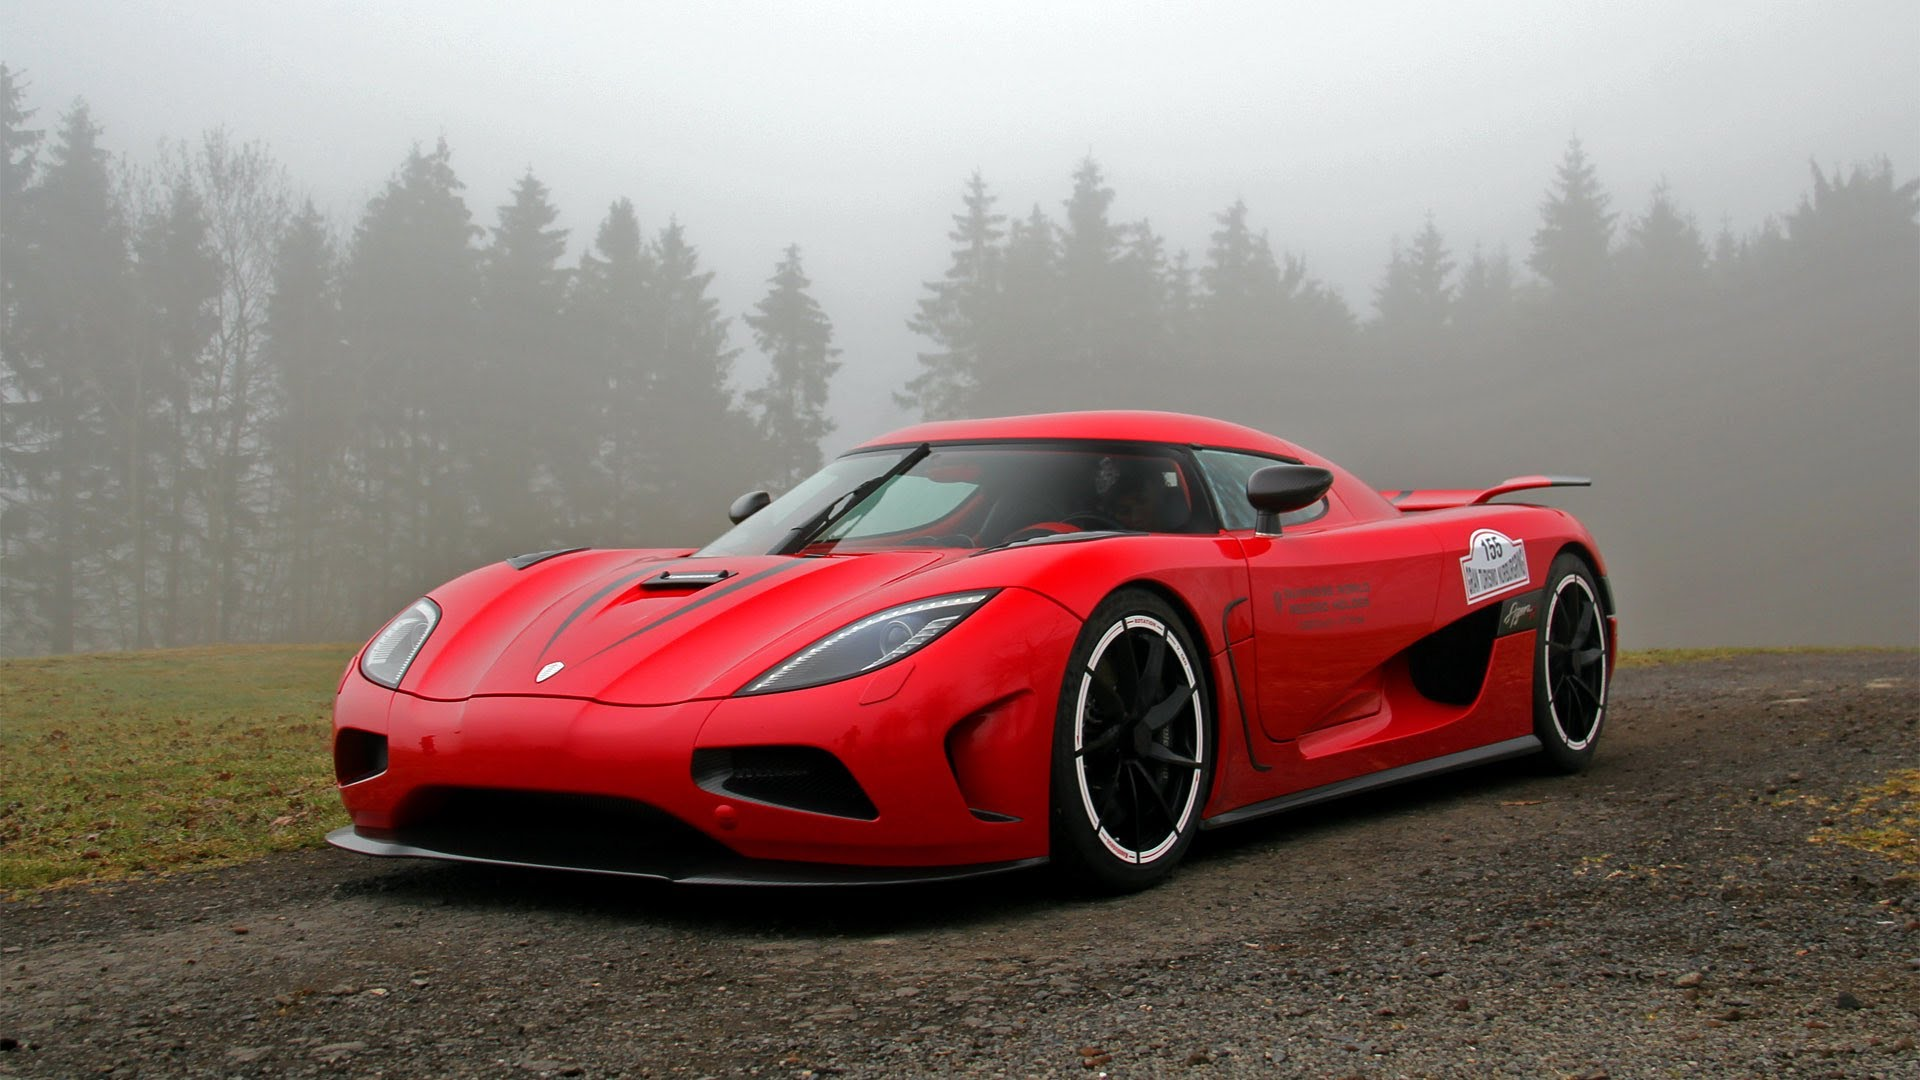 koenigsegg agera r red car wallpaper 1920x1080 17147